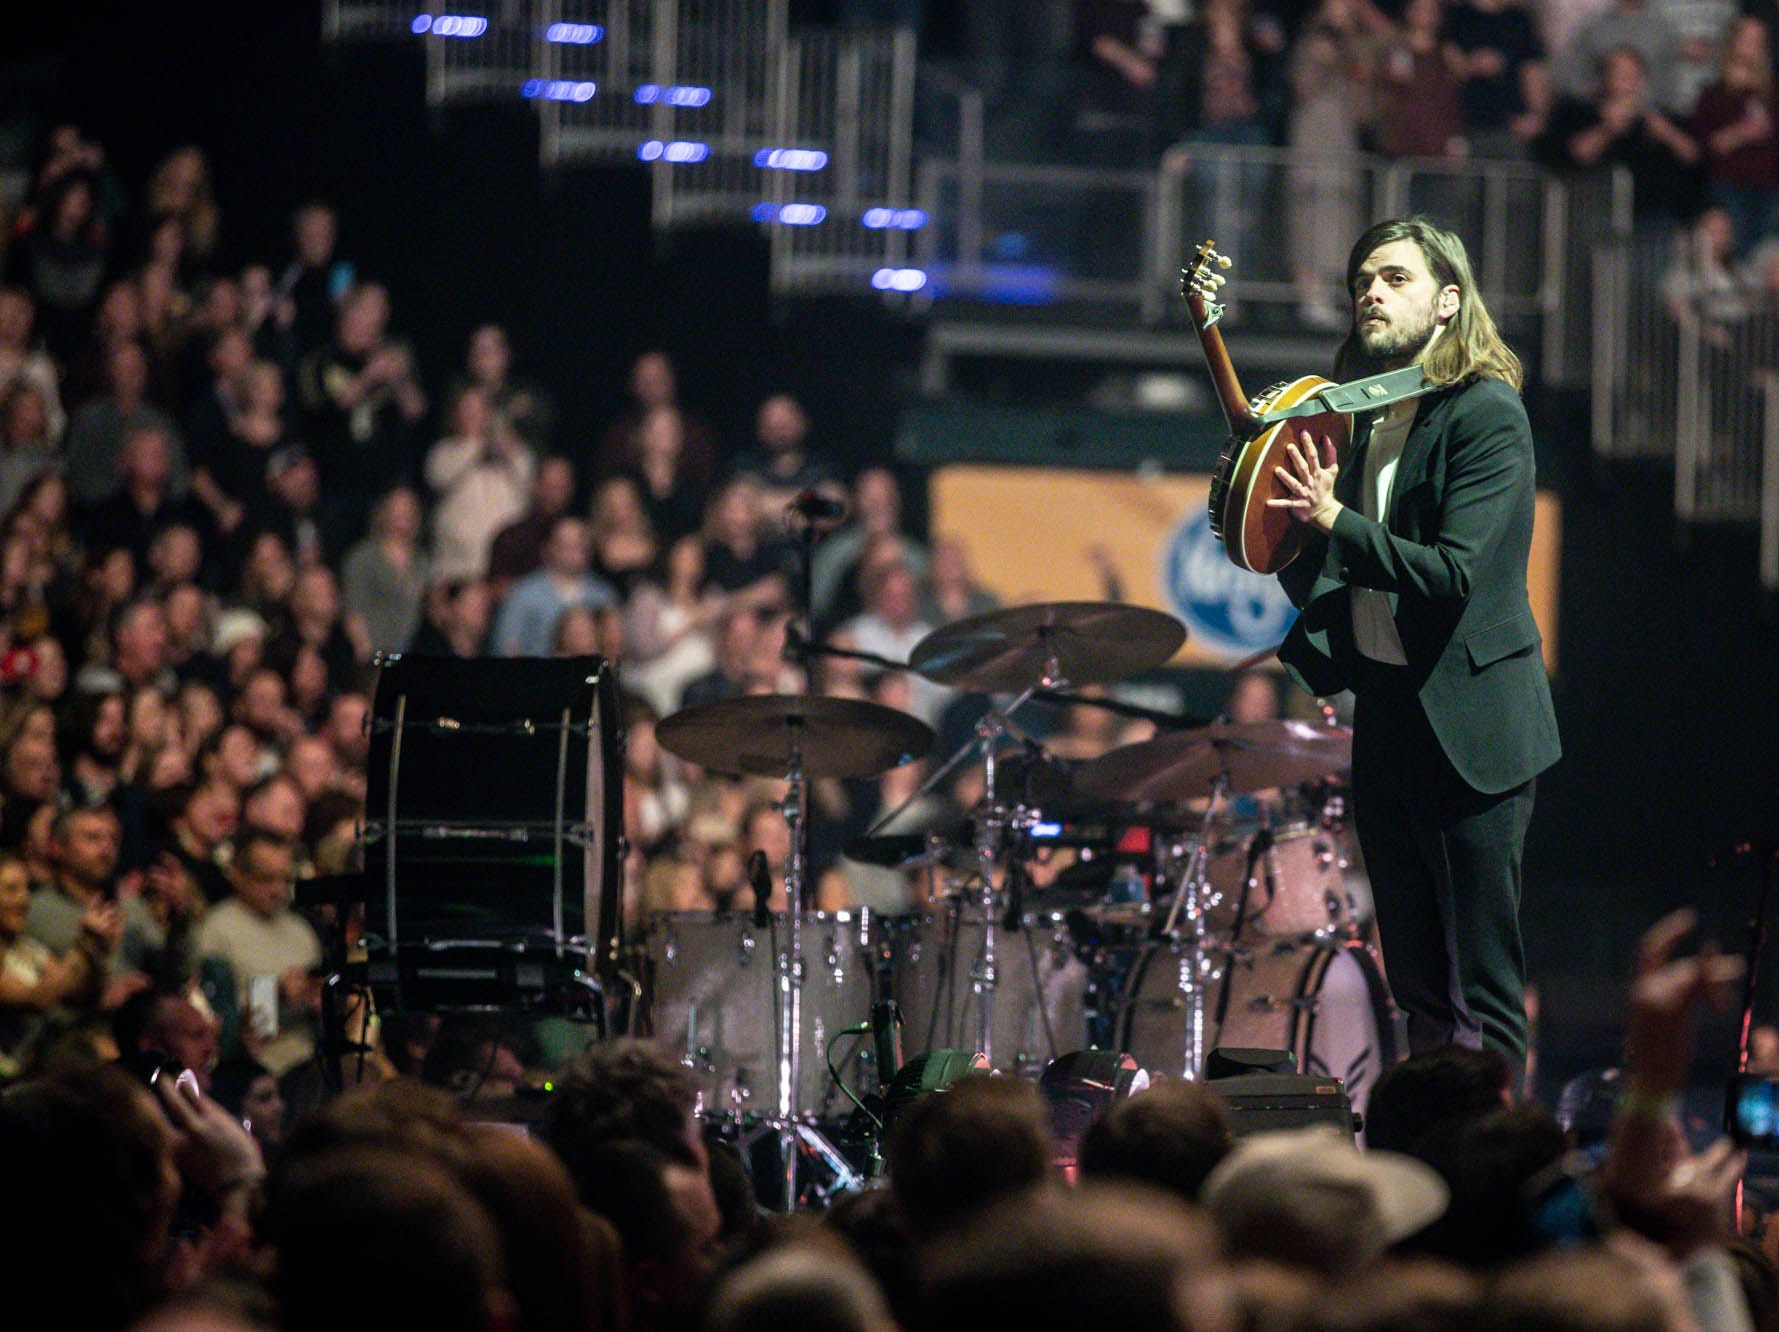 Winston Marshall, with the British band Mumford & Sons plays banjo with the band at Bankers Life Fieldhouse in Indianapolis on Monday, March 25, 2019.